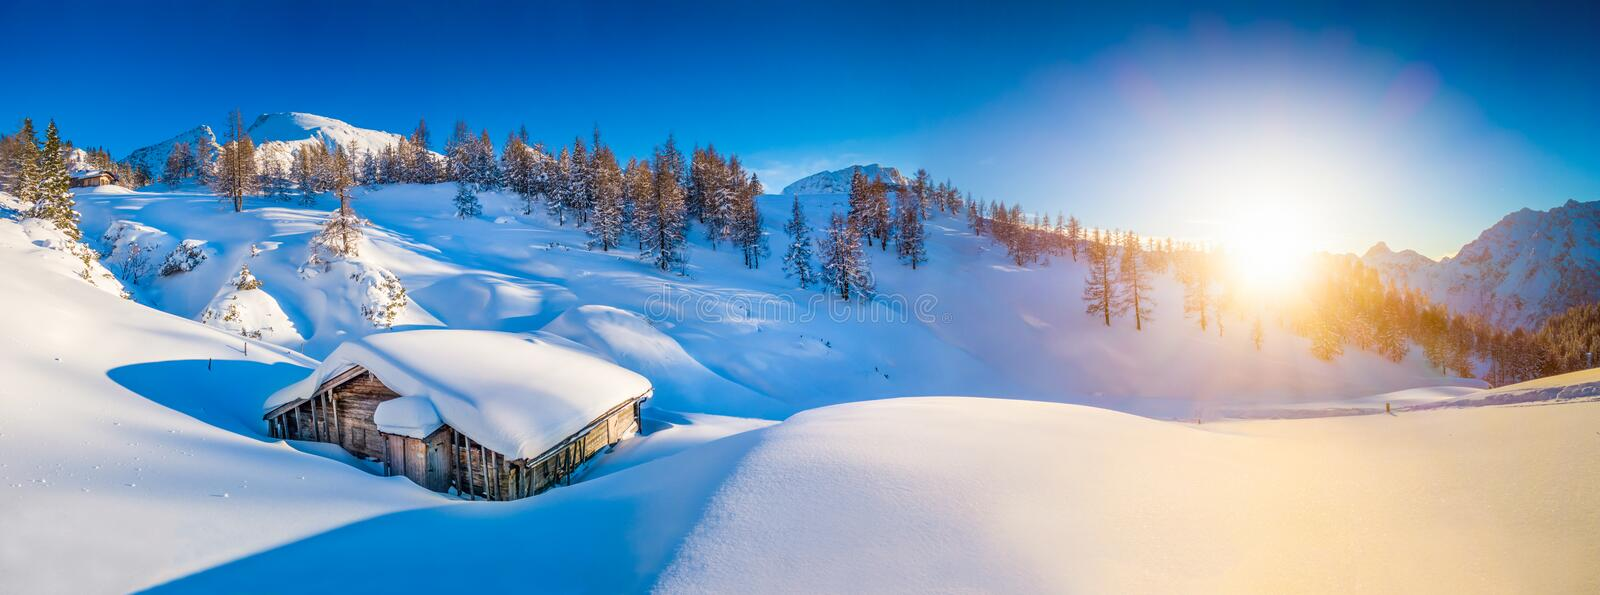 Idyllic winter mountain landscape in the Alps at sunset stock photos